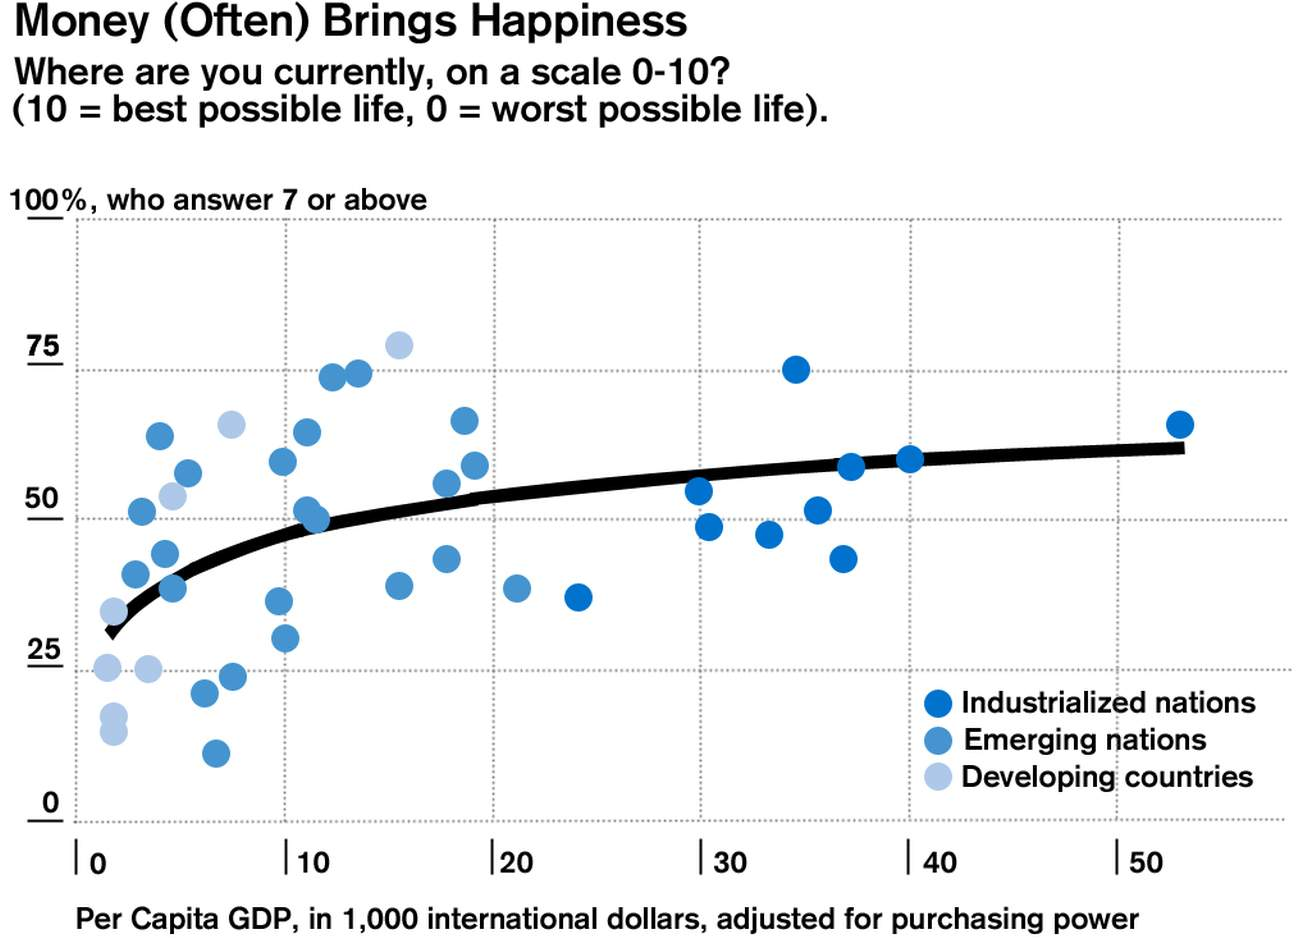 Money (Often) Brings Happiness